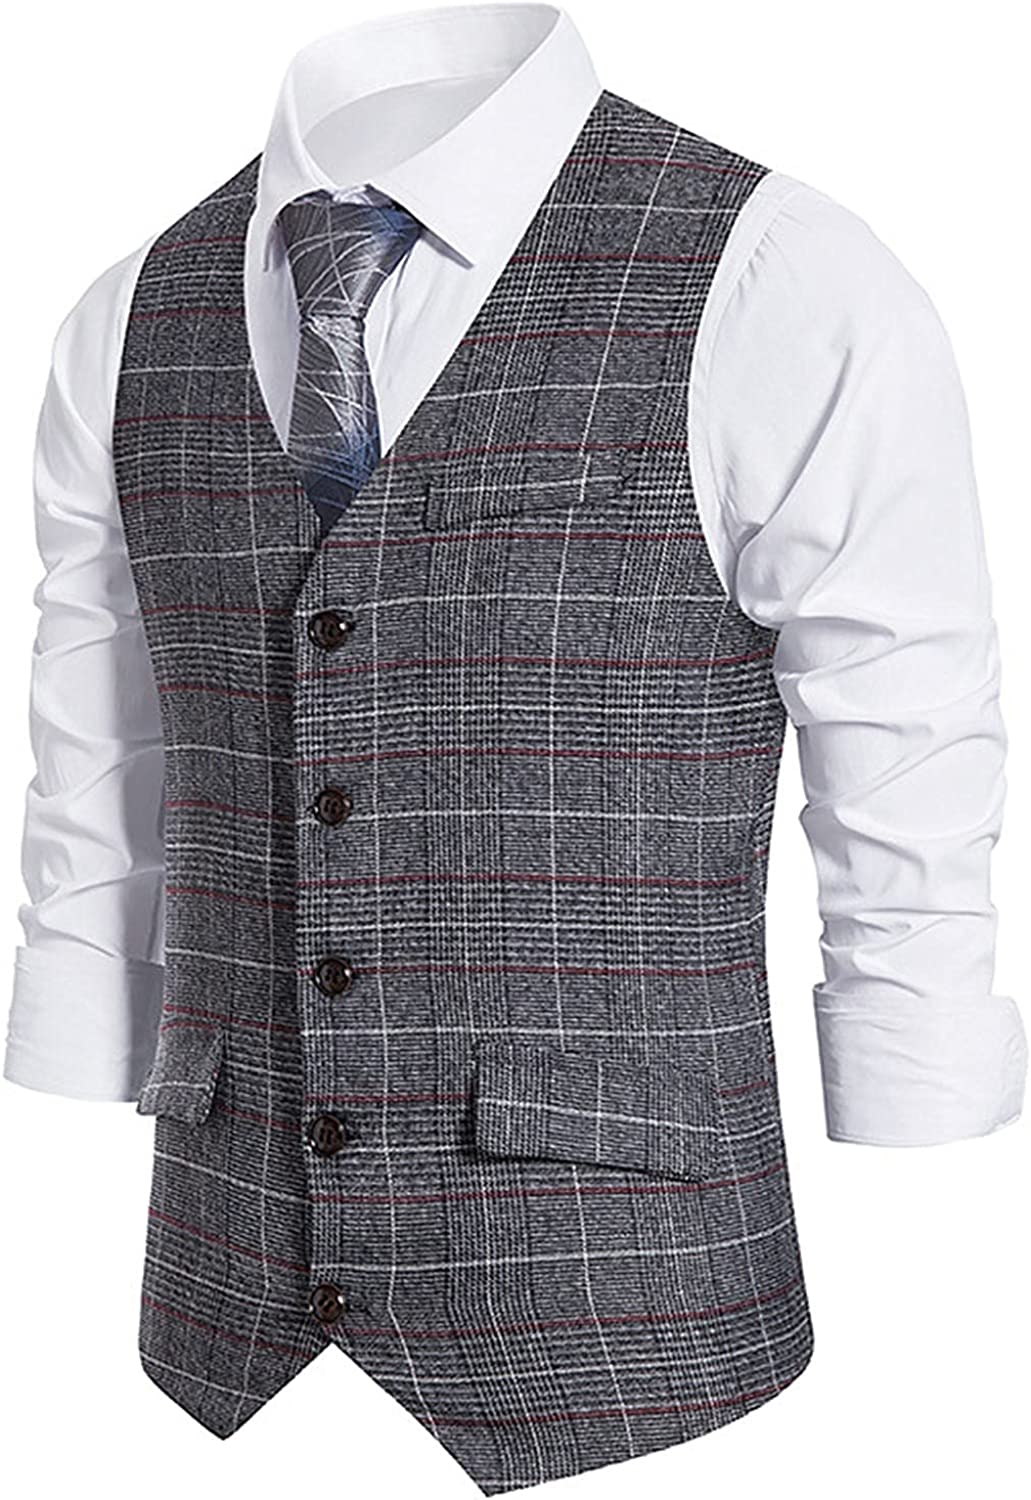 Men's Business Suit Vest Slim Fit Casual Retro Single Breasted Coat Wedding Party Waistcoat to wear with Dress Shirt